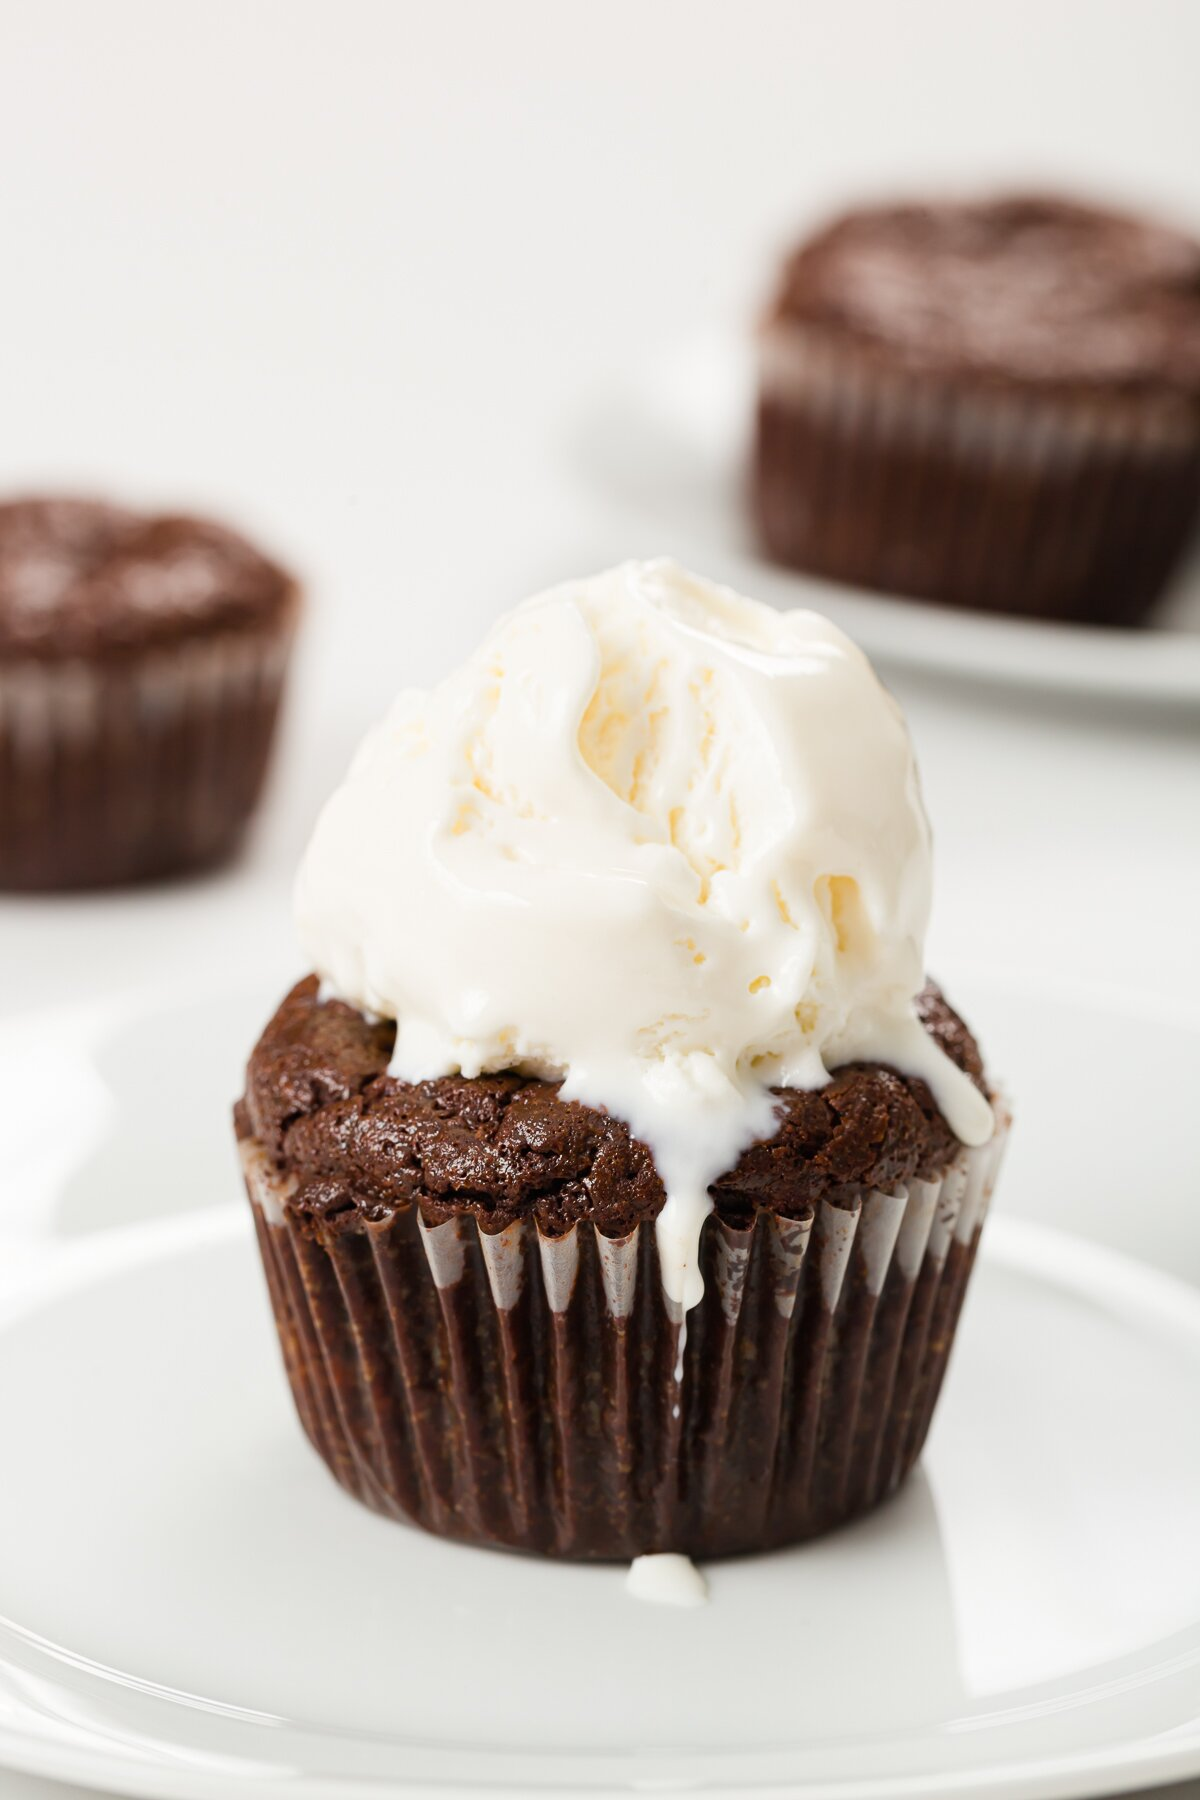 flourless chocolate cupcake with melty vanilla ice cream cream on top and some cupcakes in the background